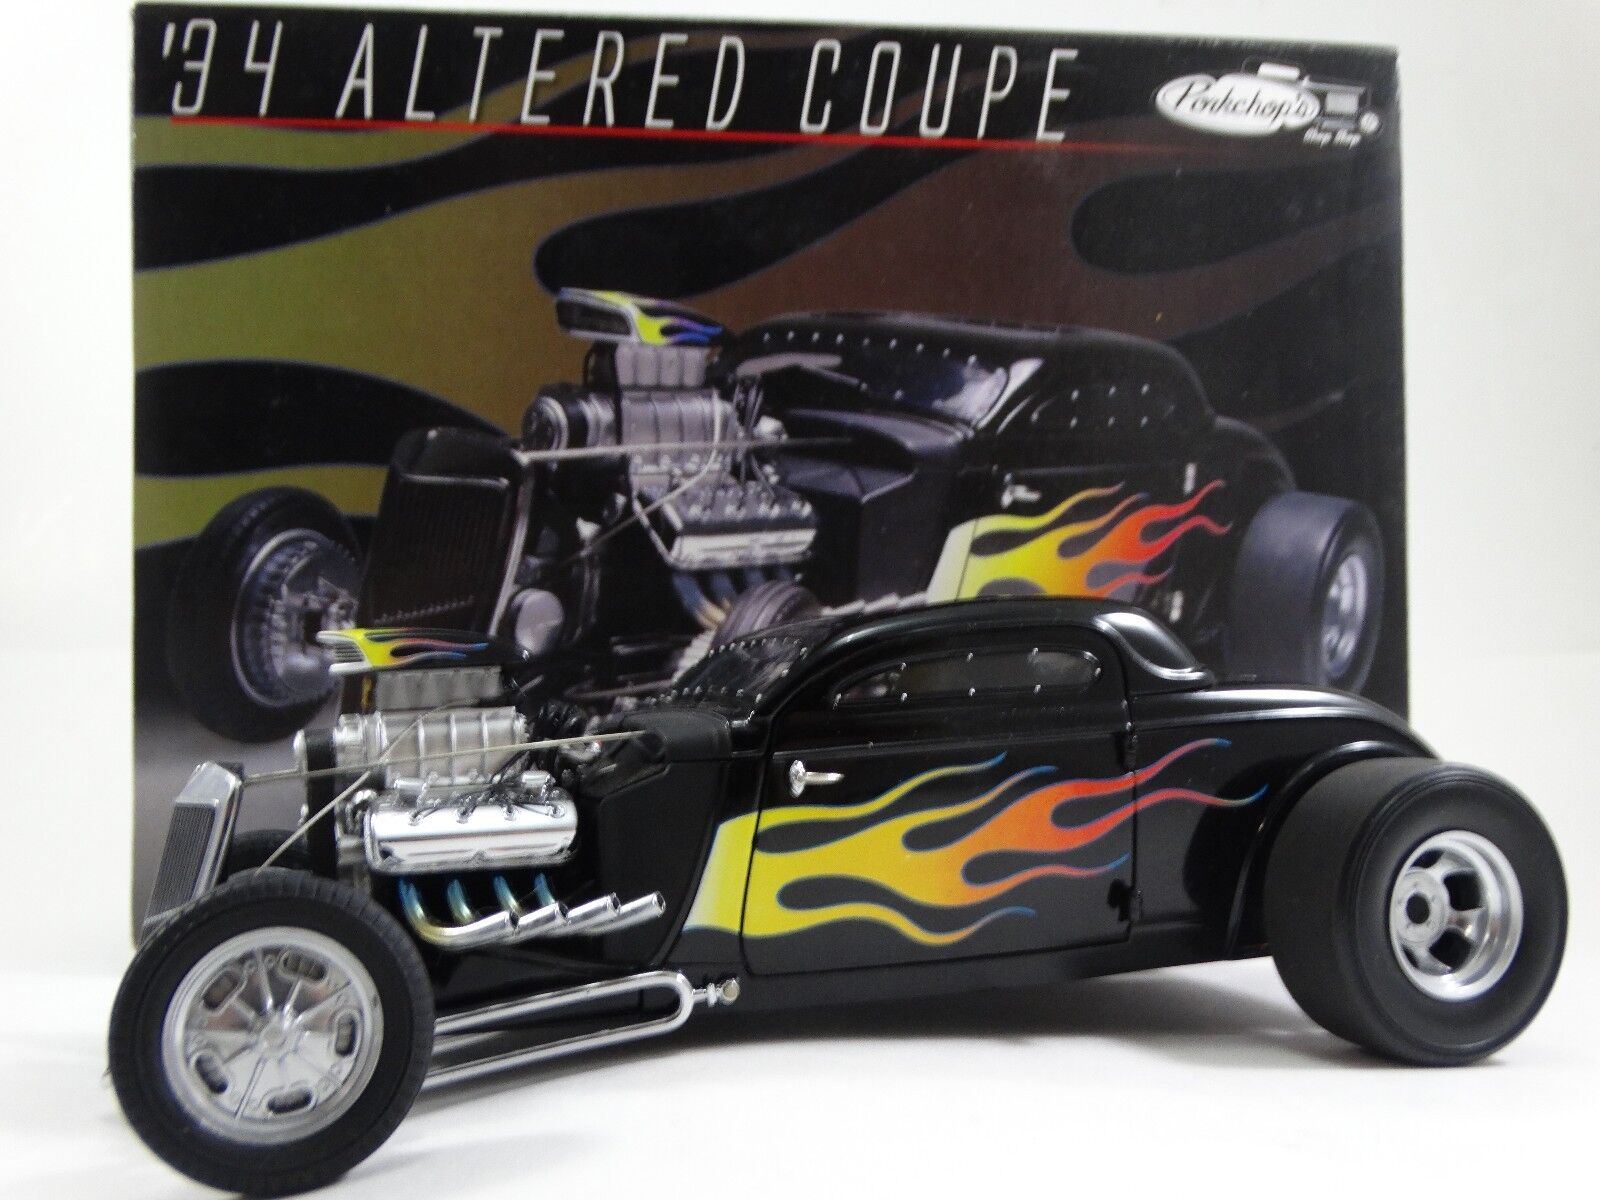 GMP Pork Chop's 1934 Ford Altered Coupe Hot Rod 1 1 1 18 Scale Diecast 34 Model Car 7f81b7